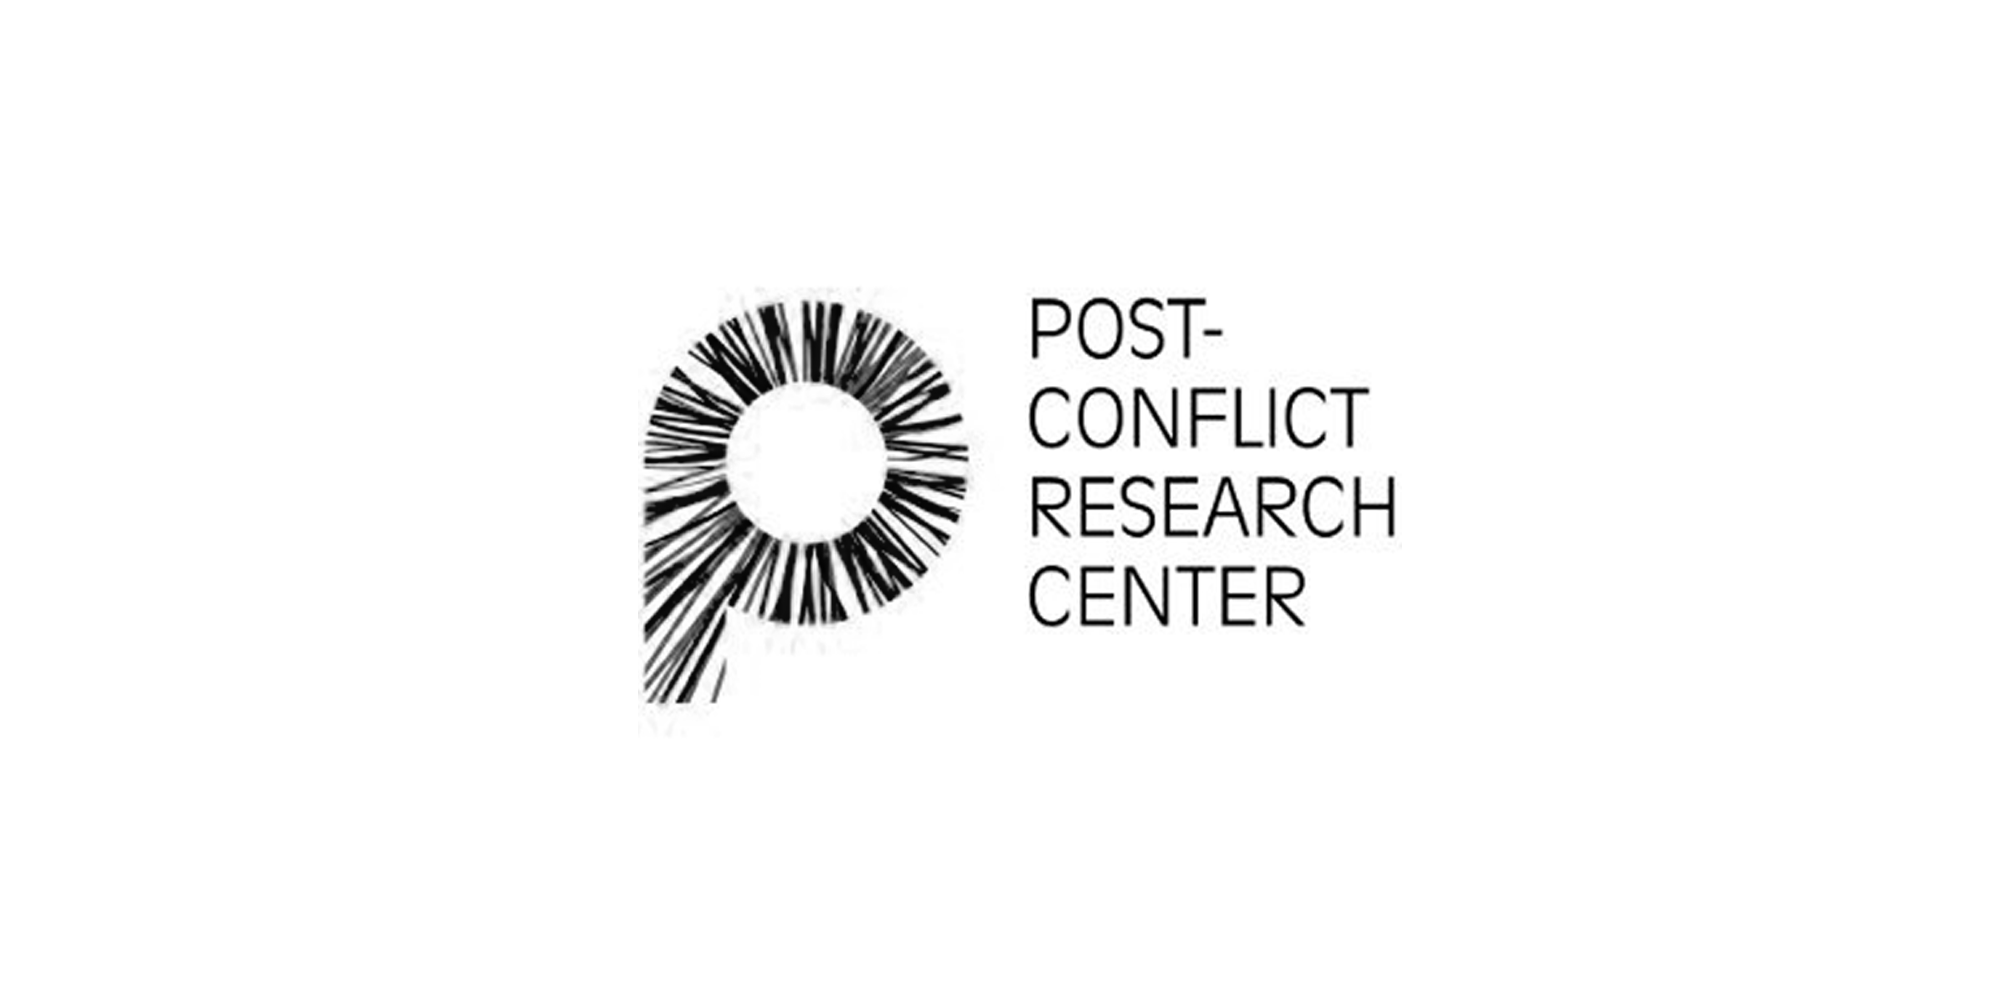 Post-Conflict Research Center logo